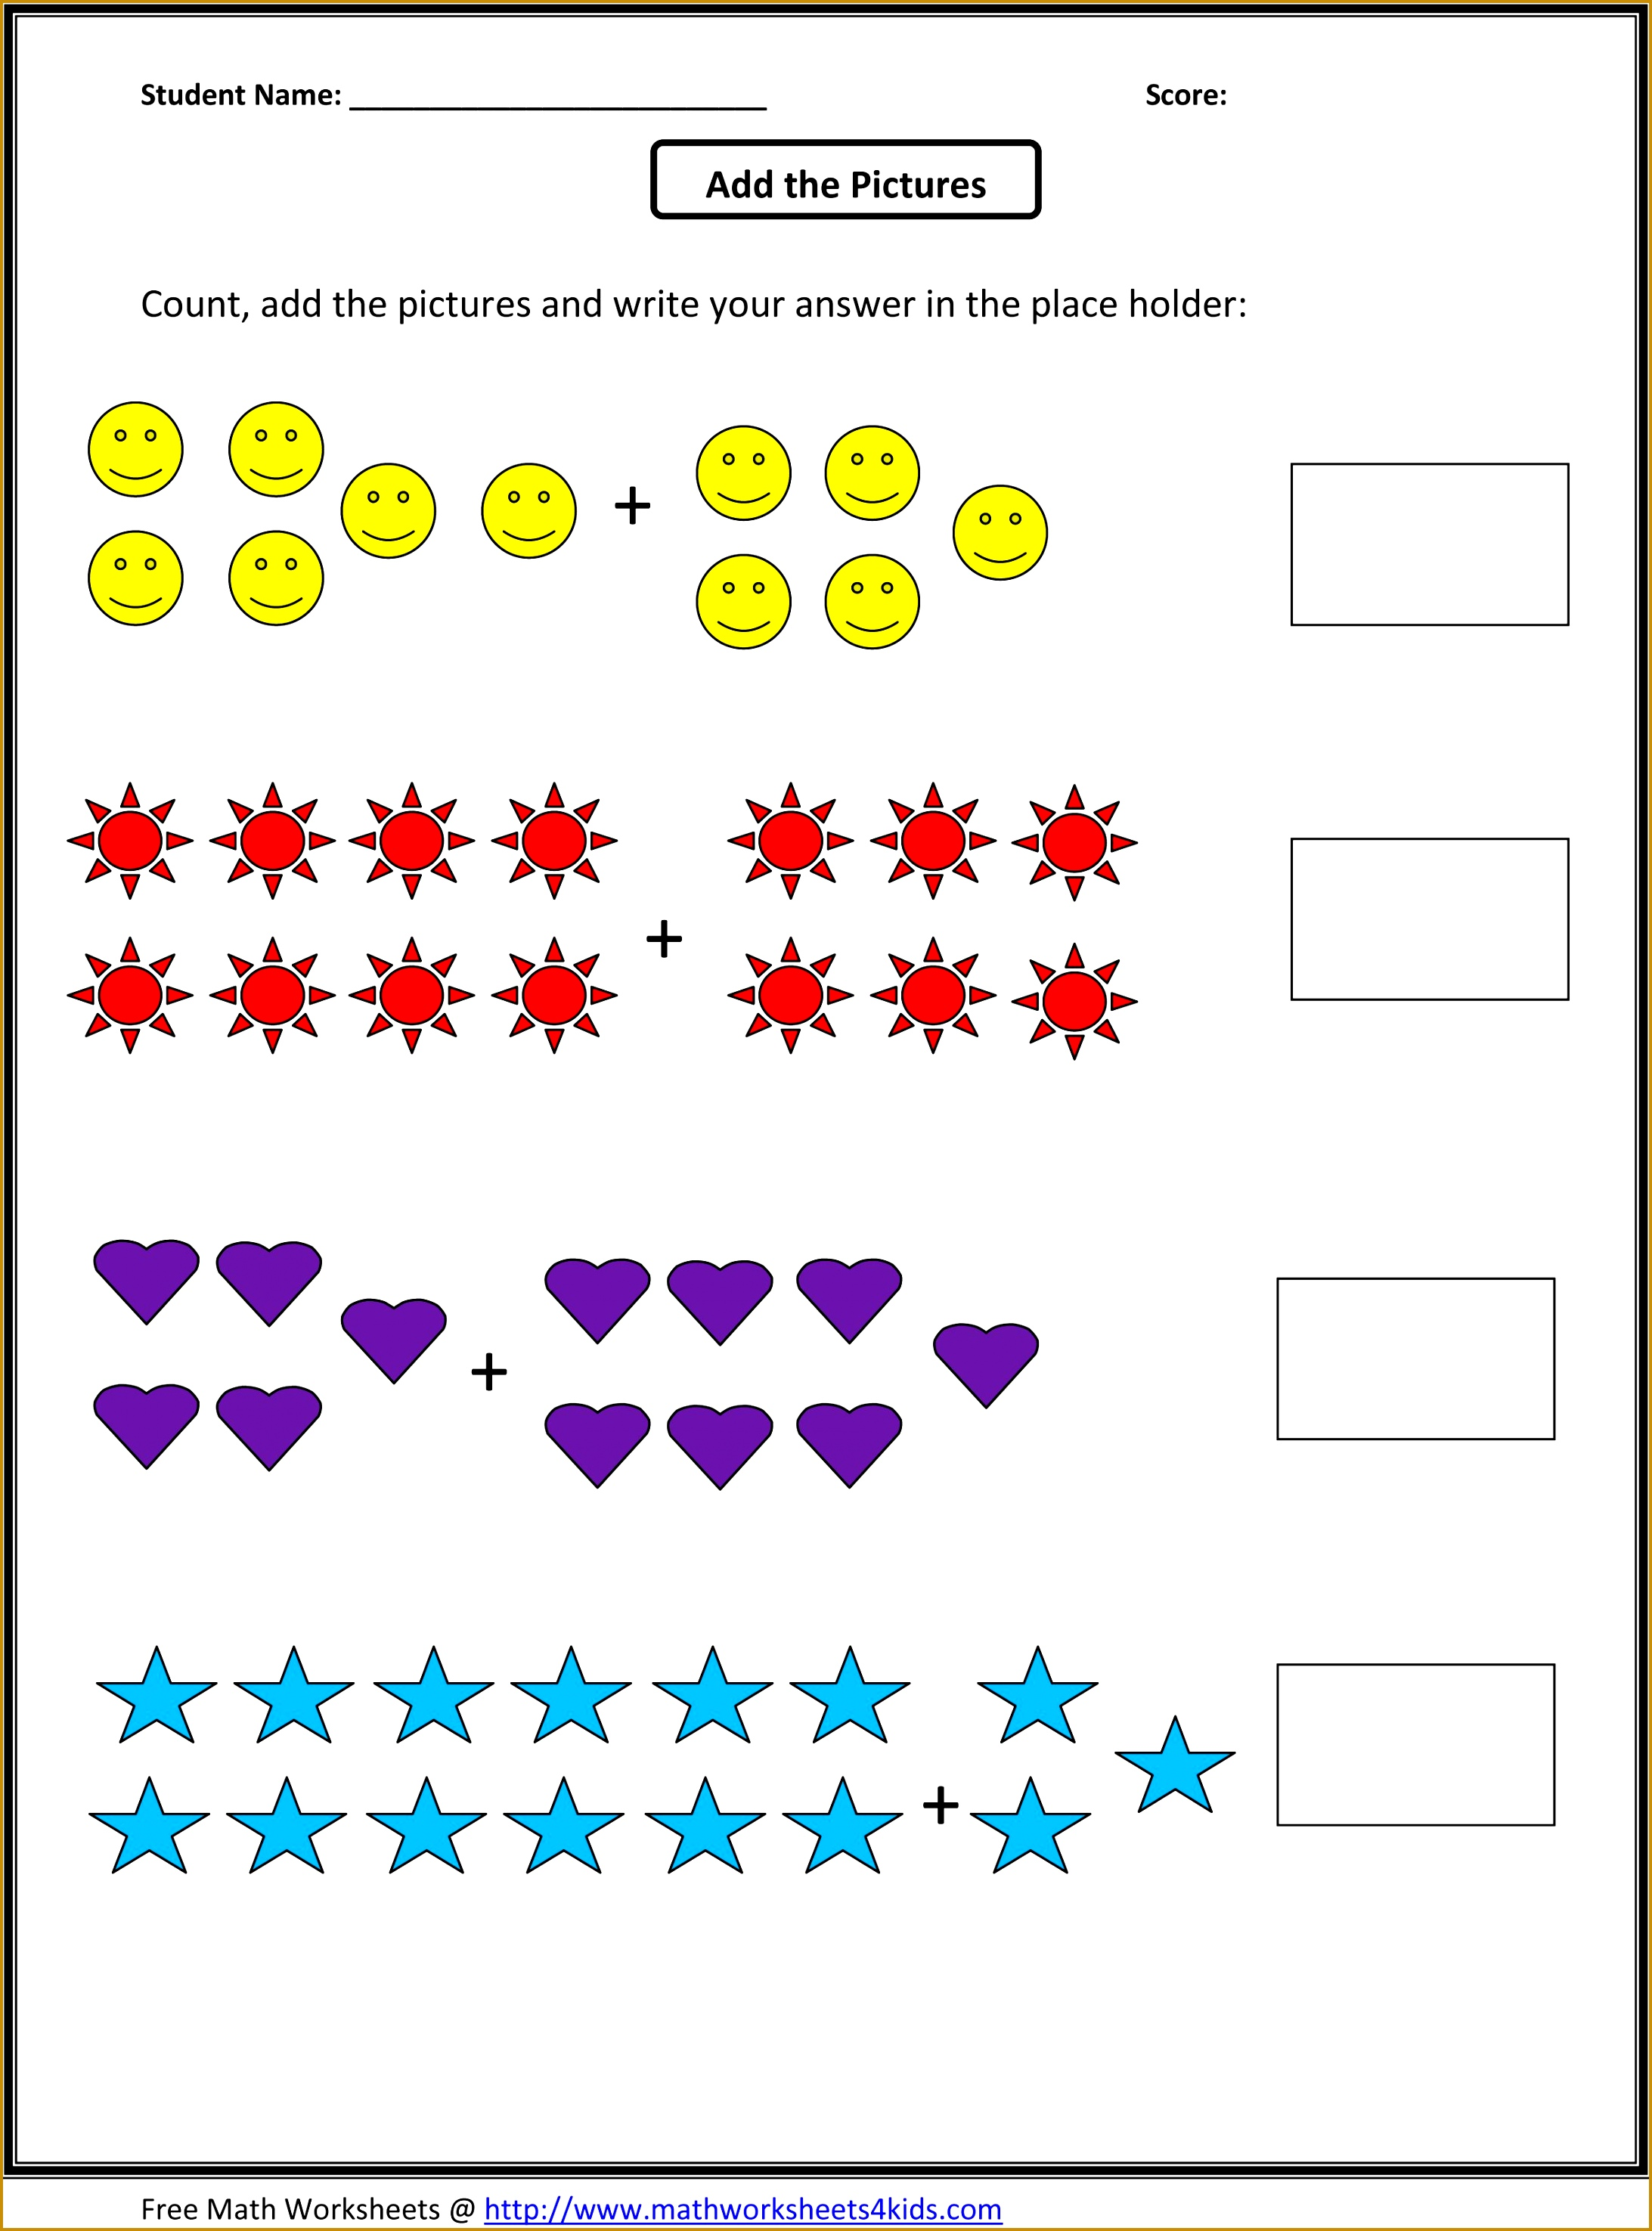 4 Addition Worksheets For Grade 1